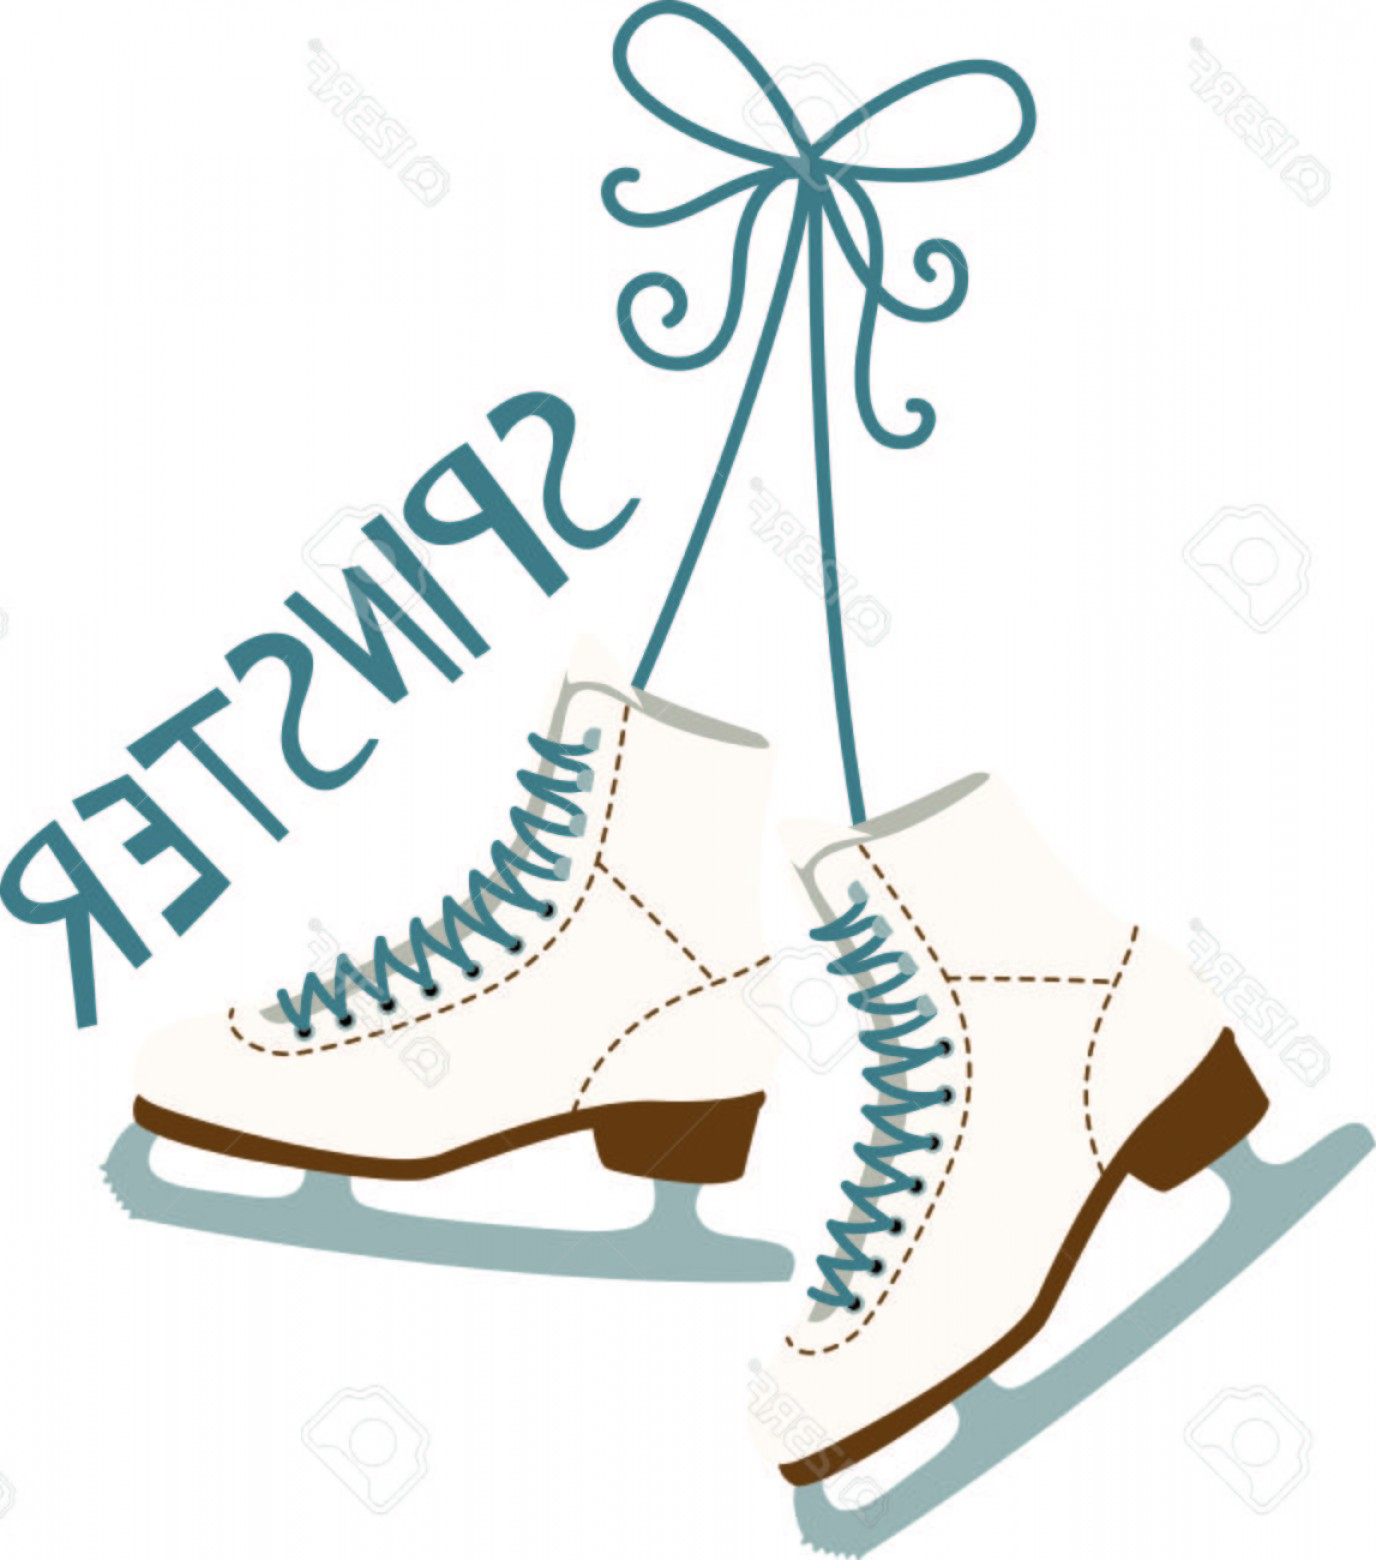 Hockey Skates Vector Art: Photostock Vector Use These Hanging Ice Skating Boots For The Fan Of Ladies Figure Skating